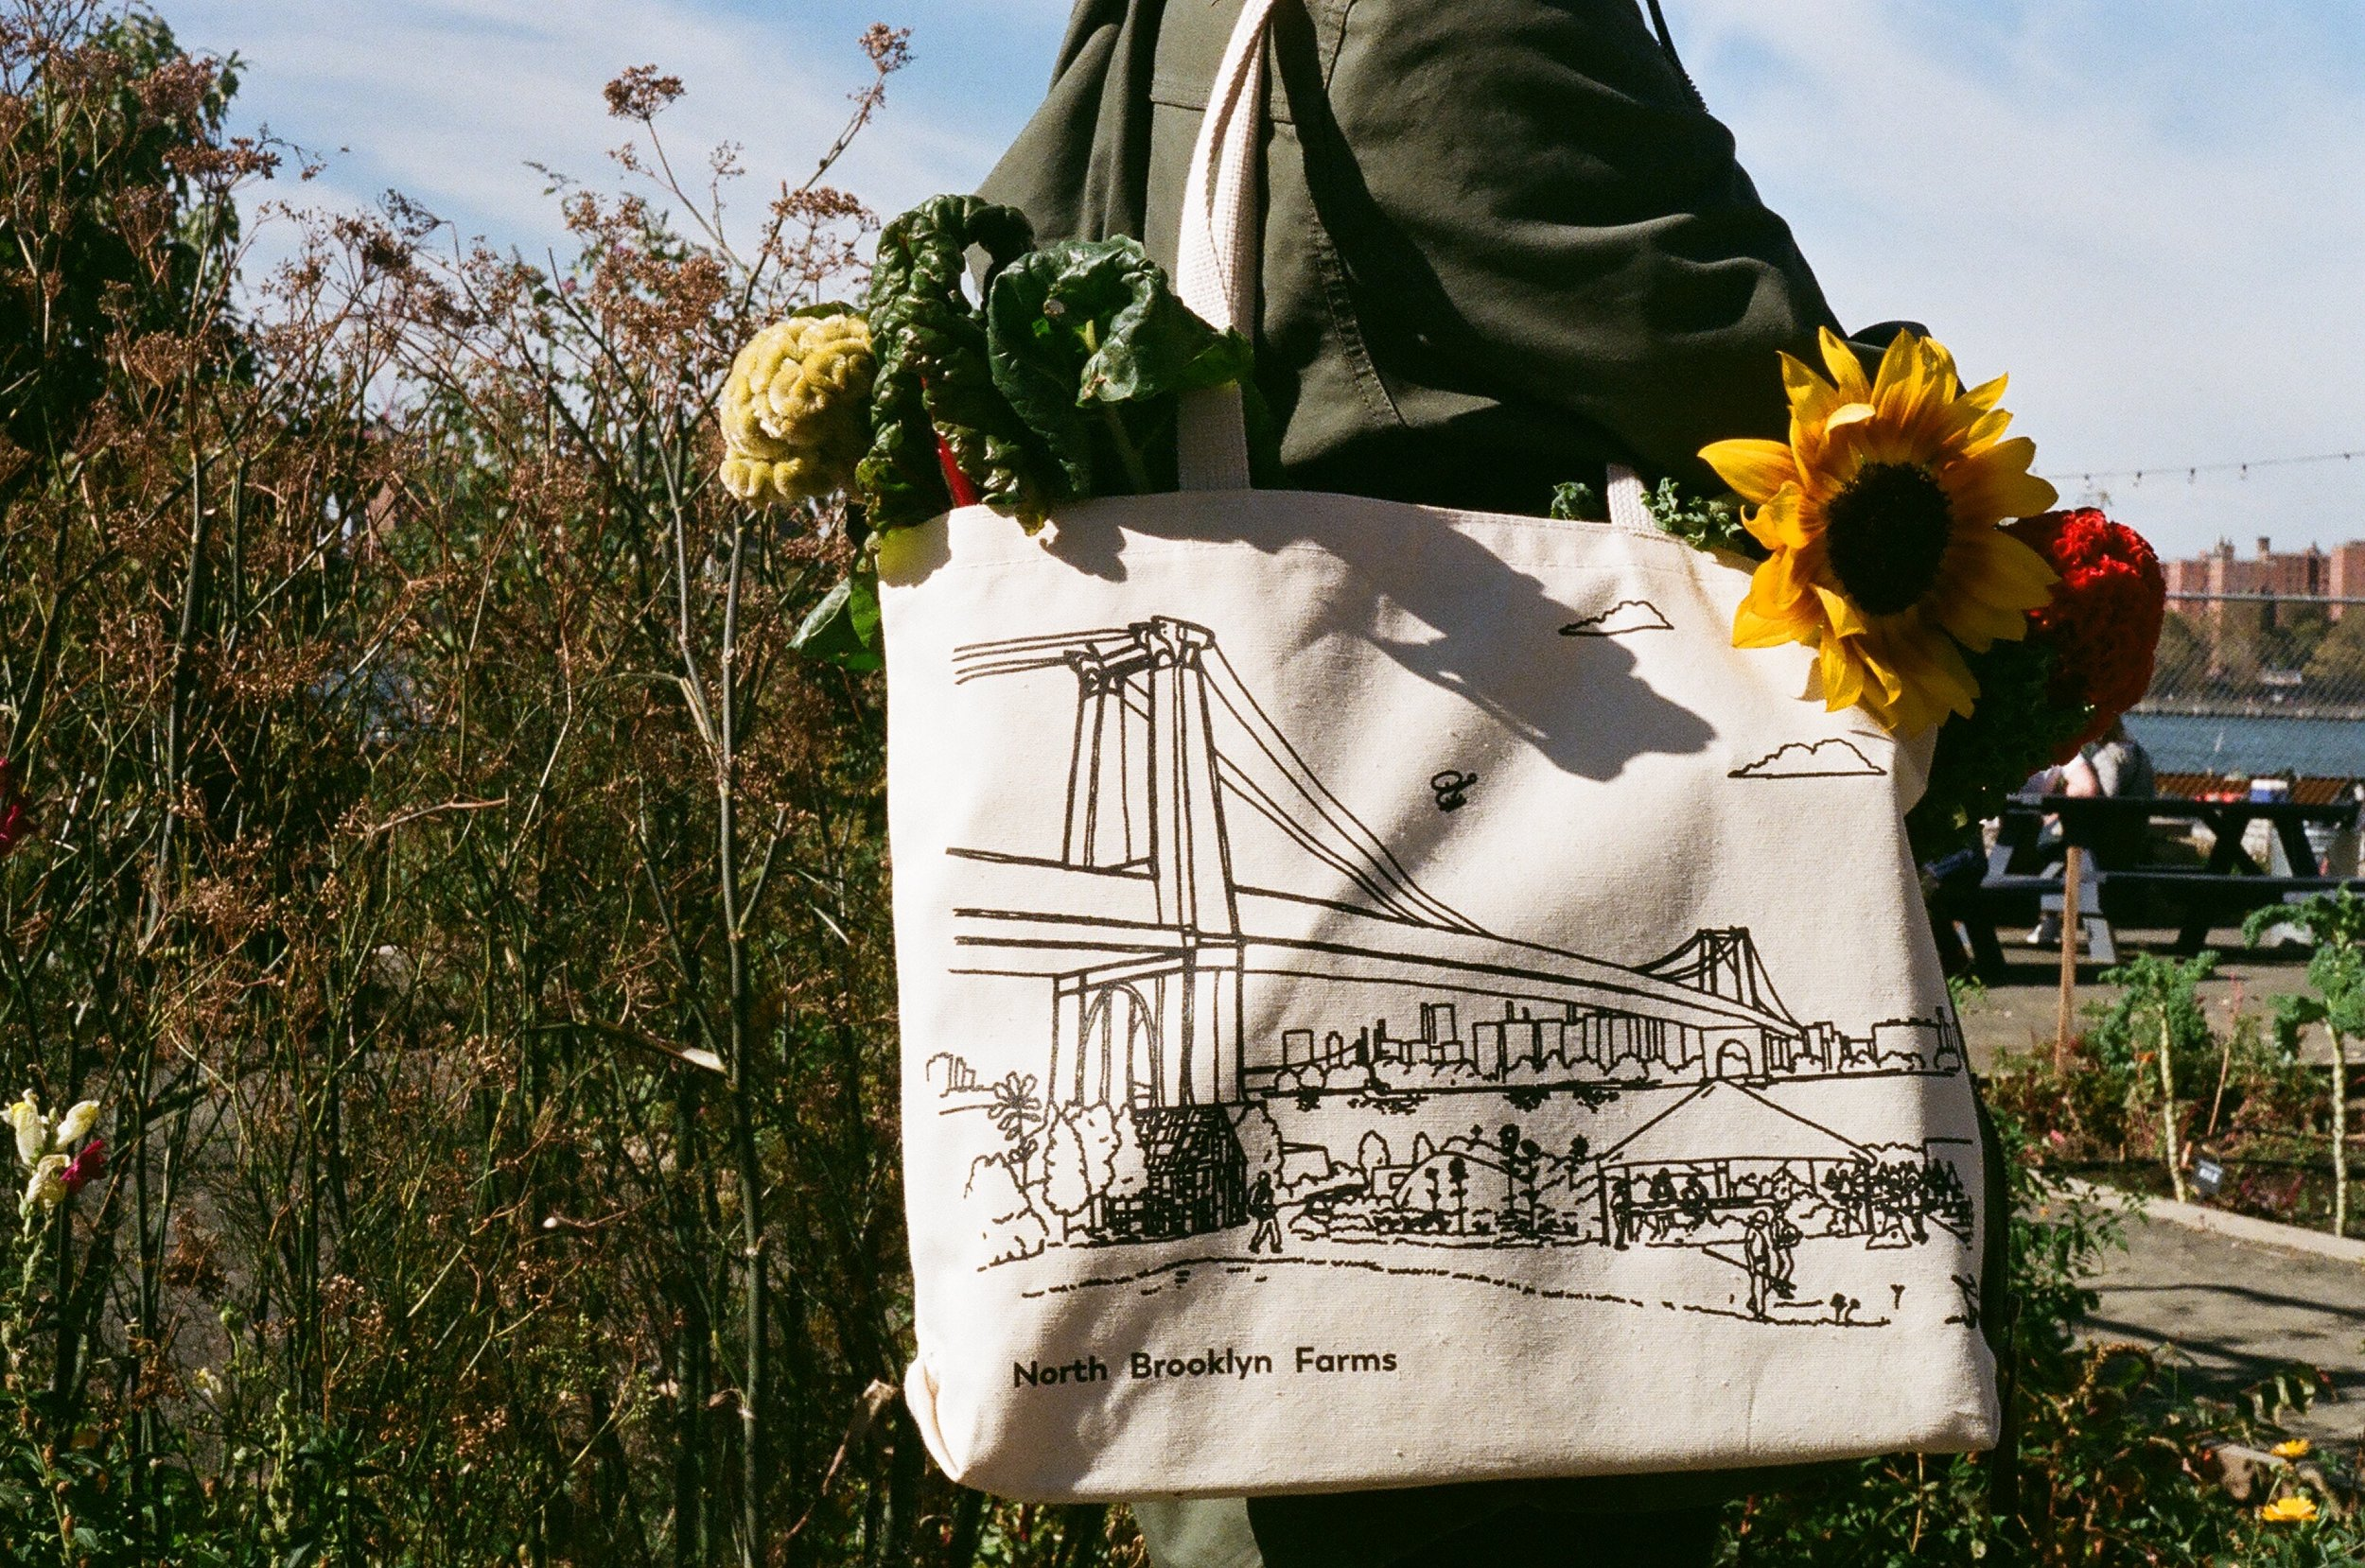 North Brooklyn Farms merch - Members can also receive our signature tote (pictured here) and other limited edition merchandise.